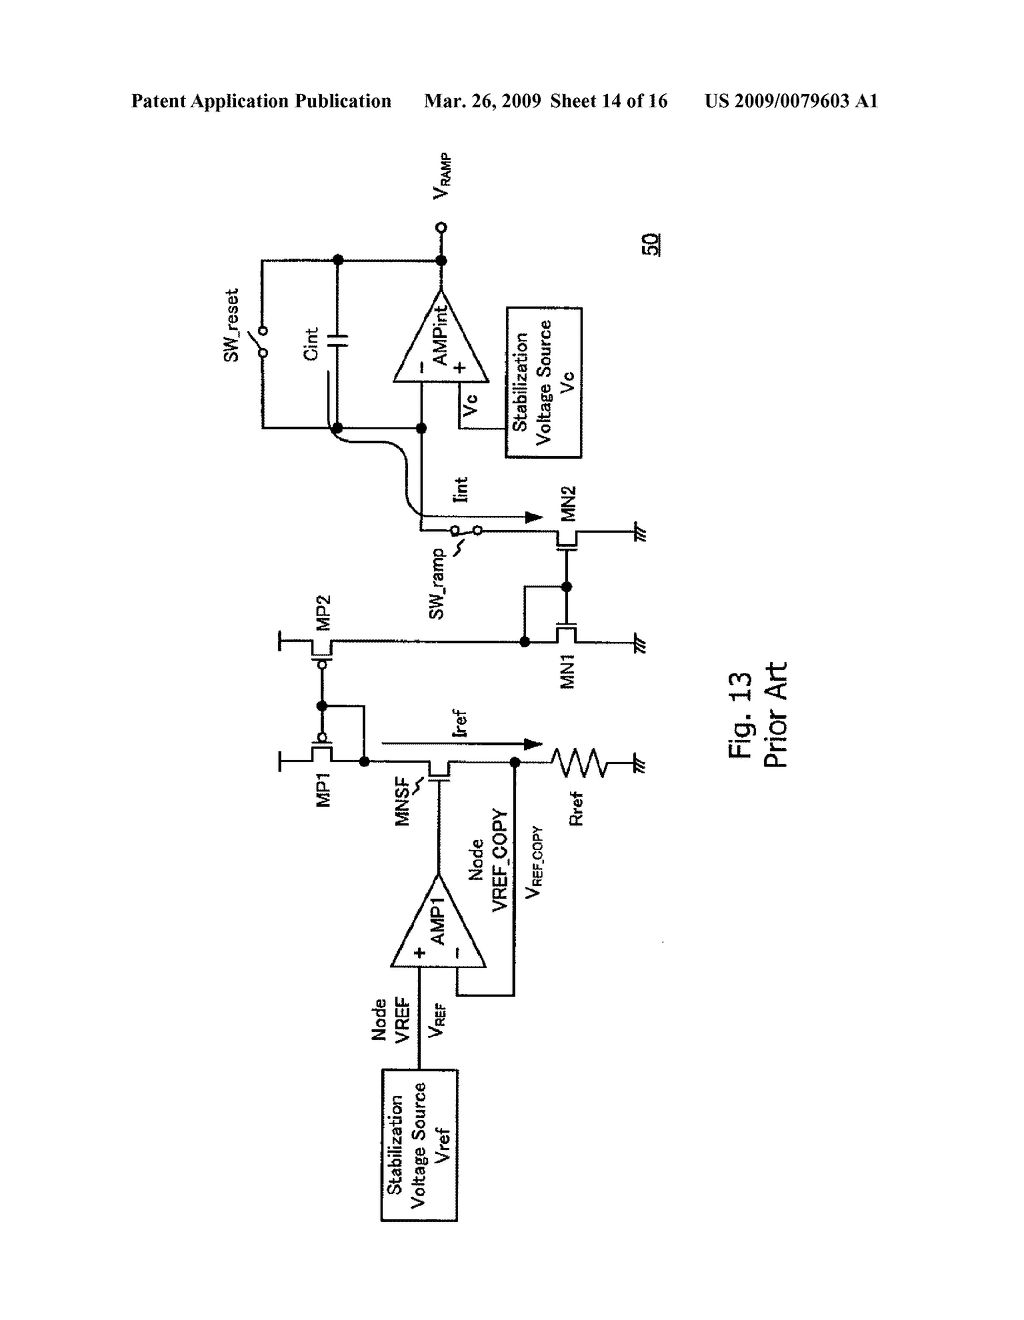 Constant Current Source Ramp Voltage Generation Circuit And A D Schematic Converter Diagram Image 15